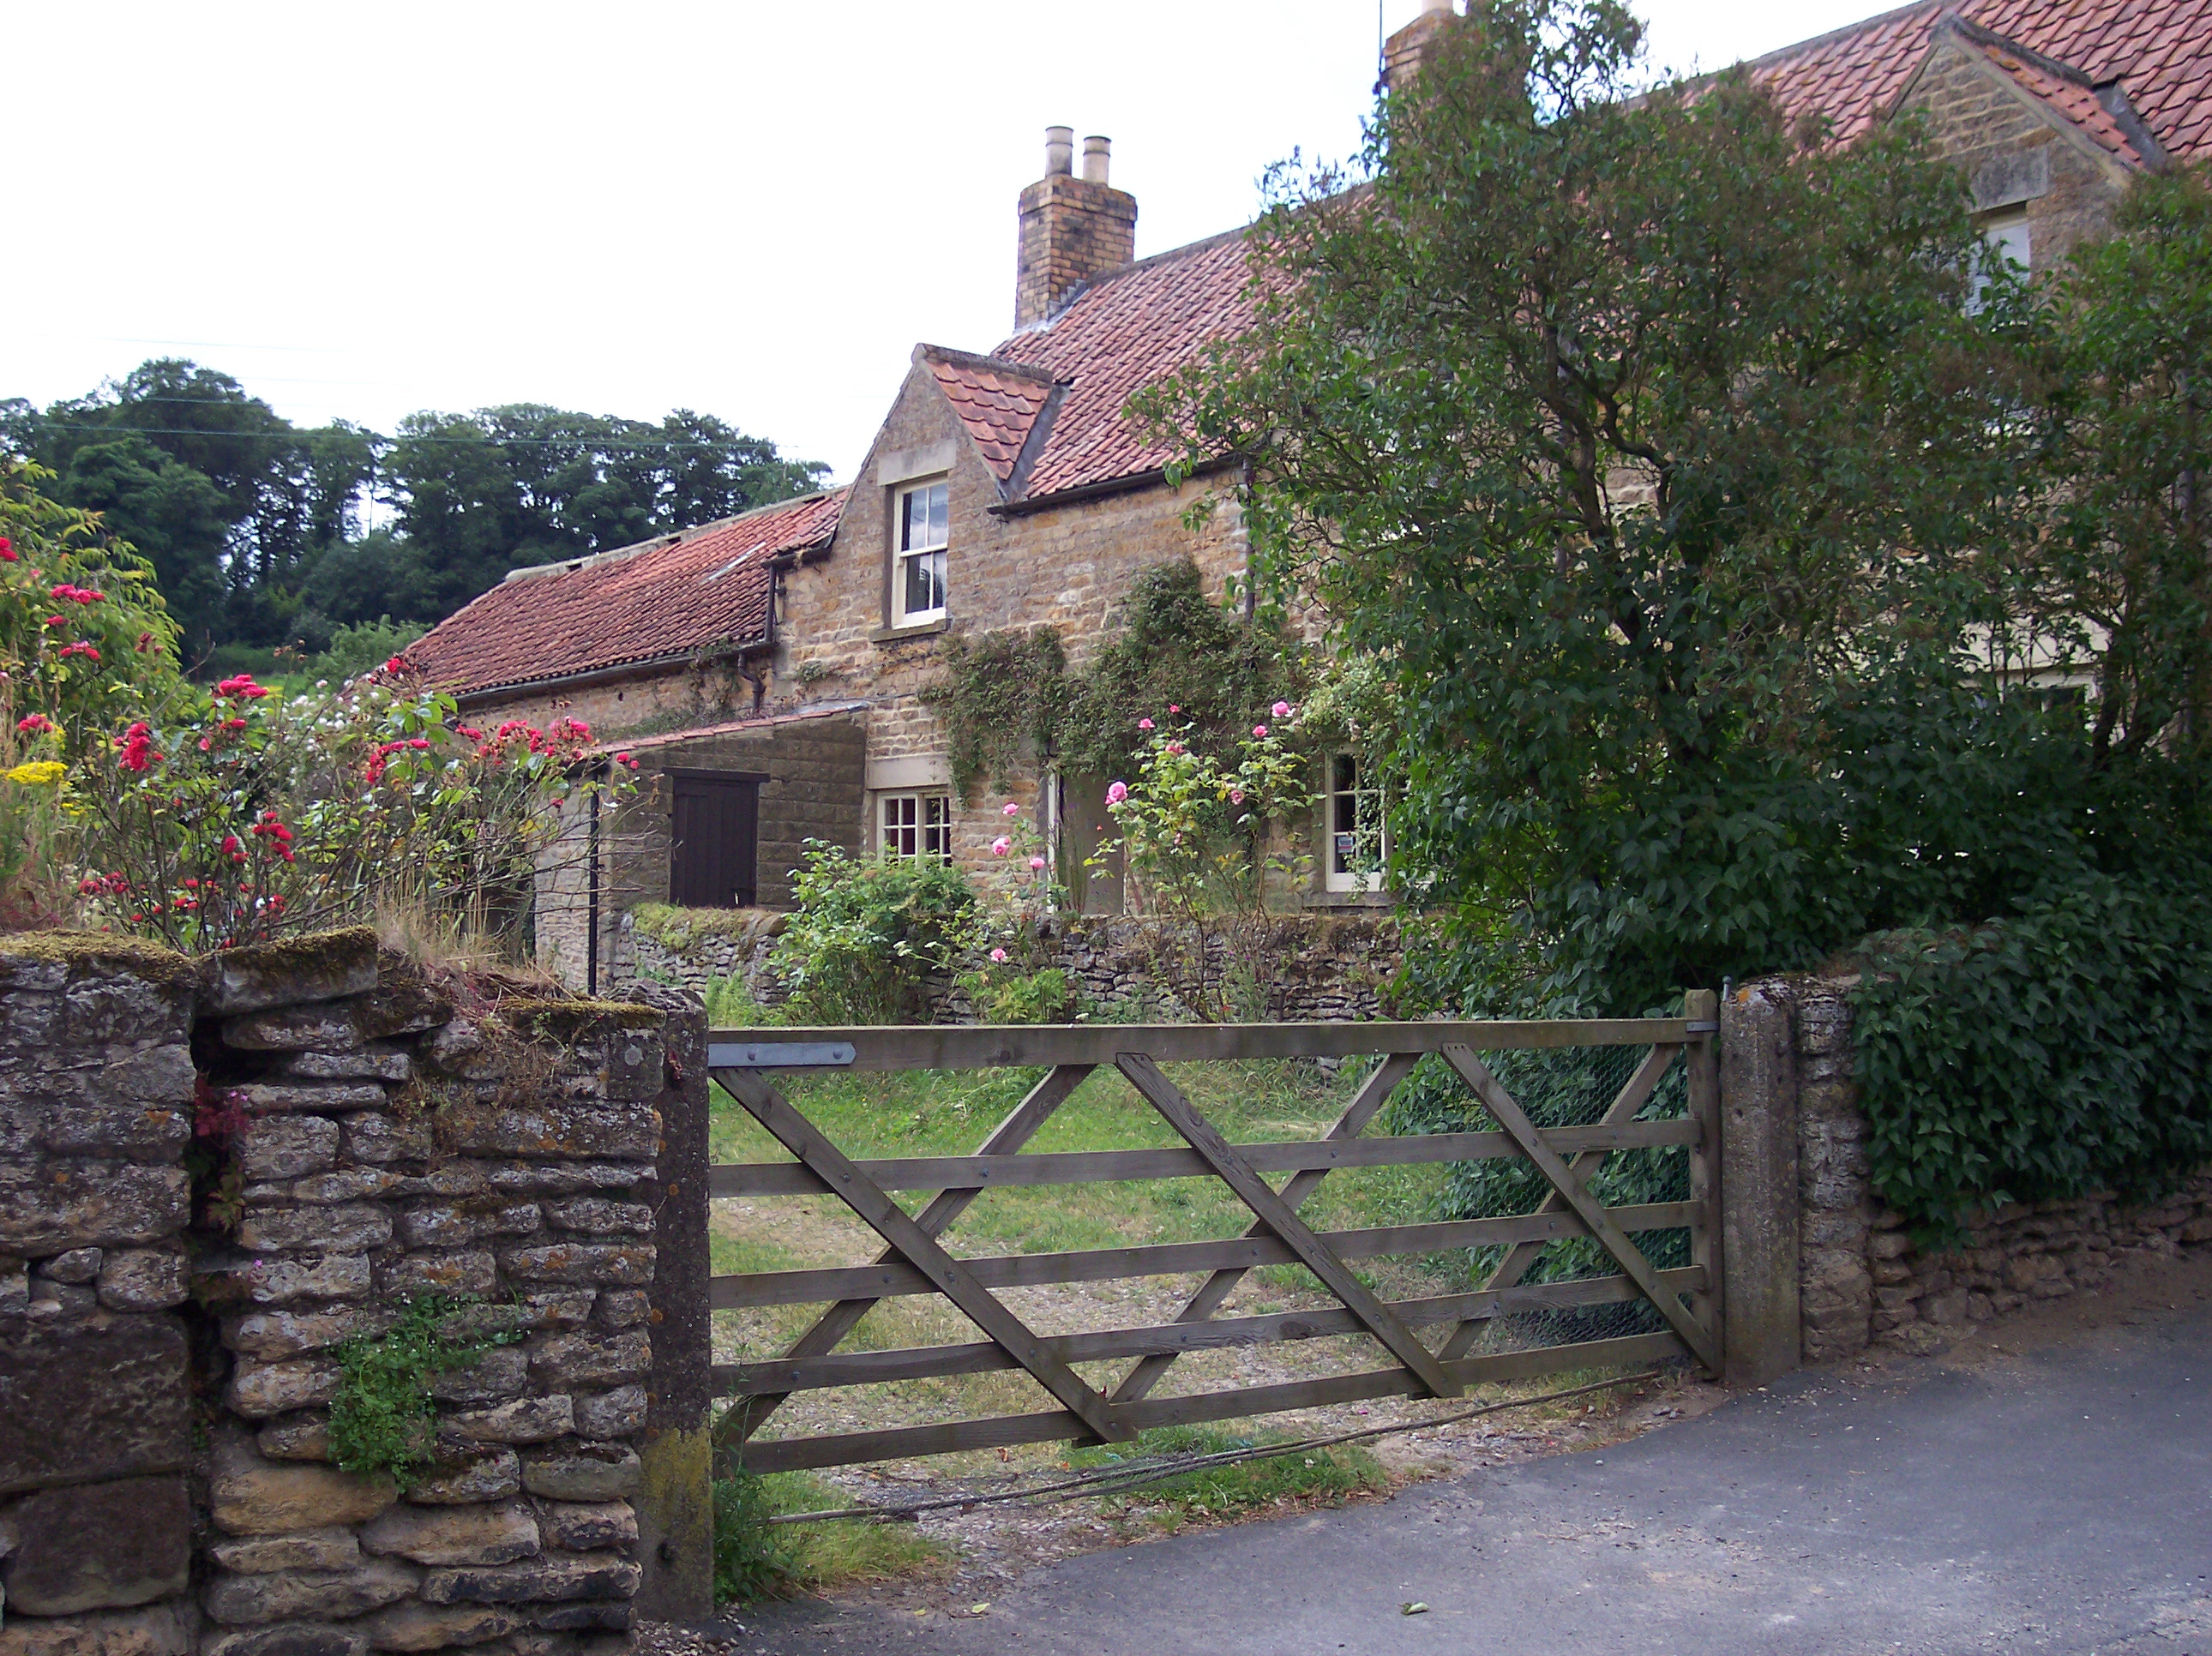 No 29 Wykeham Lilac Cottage 2